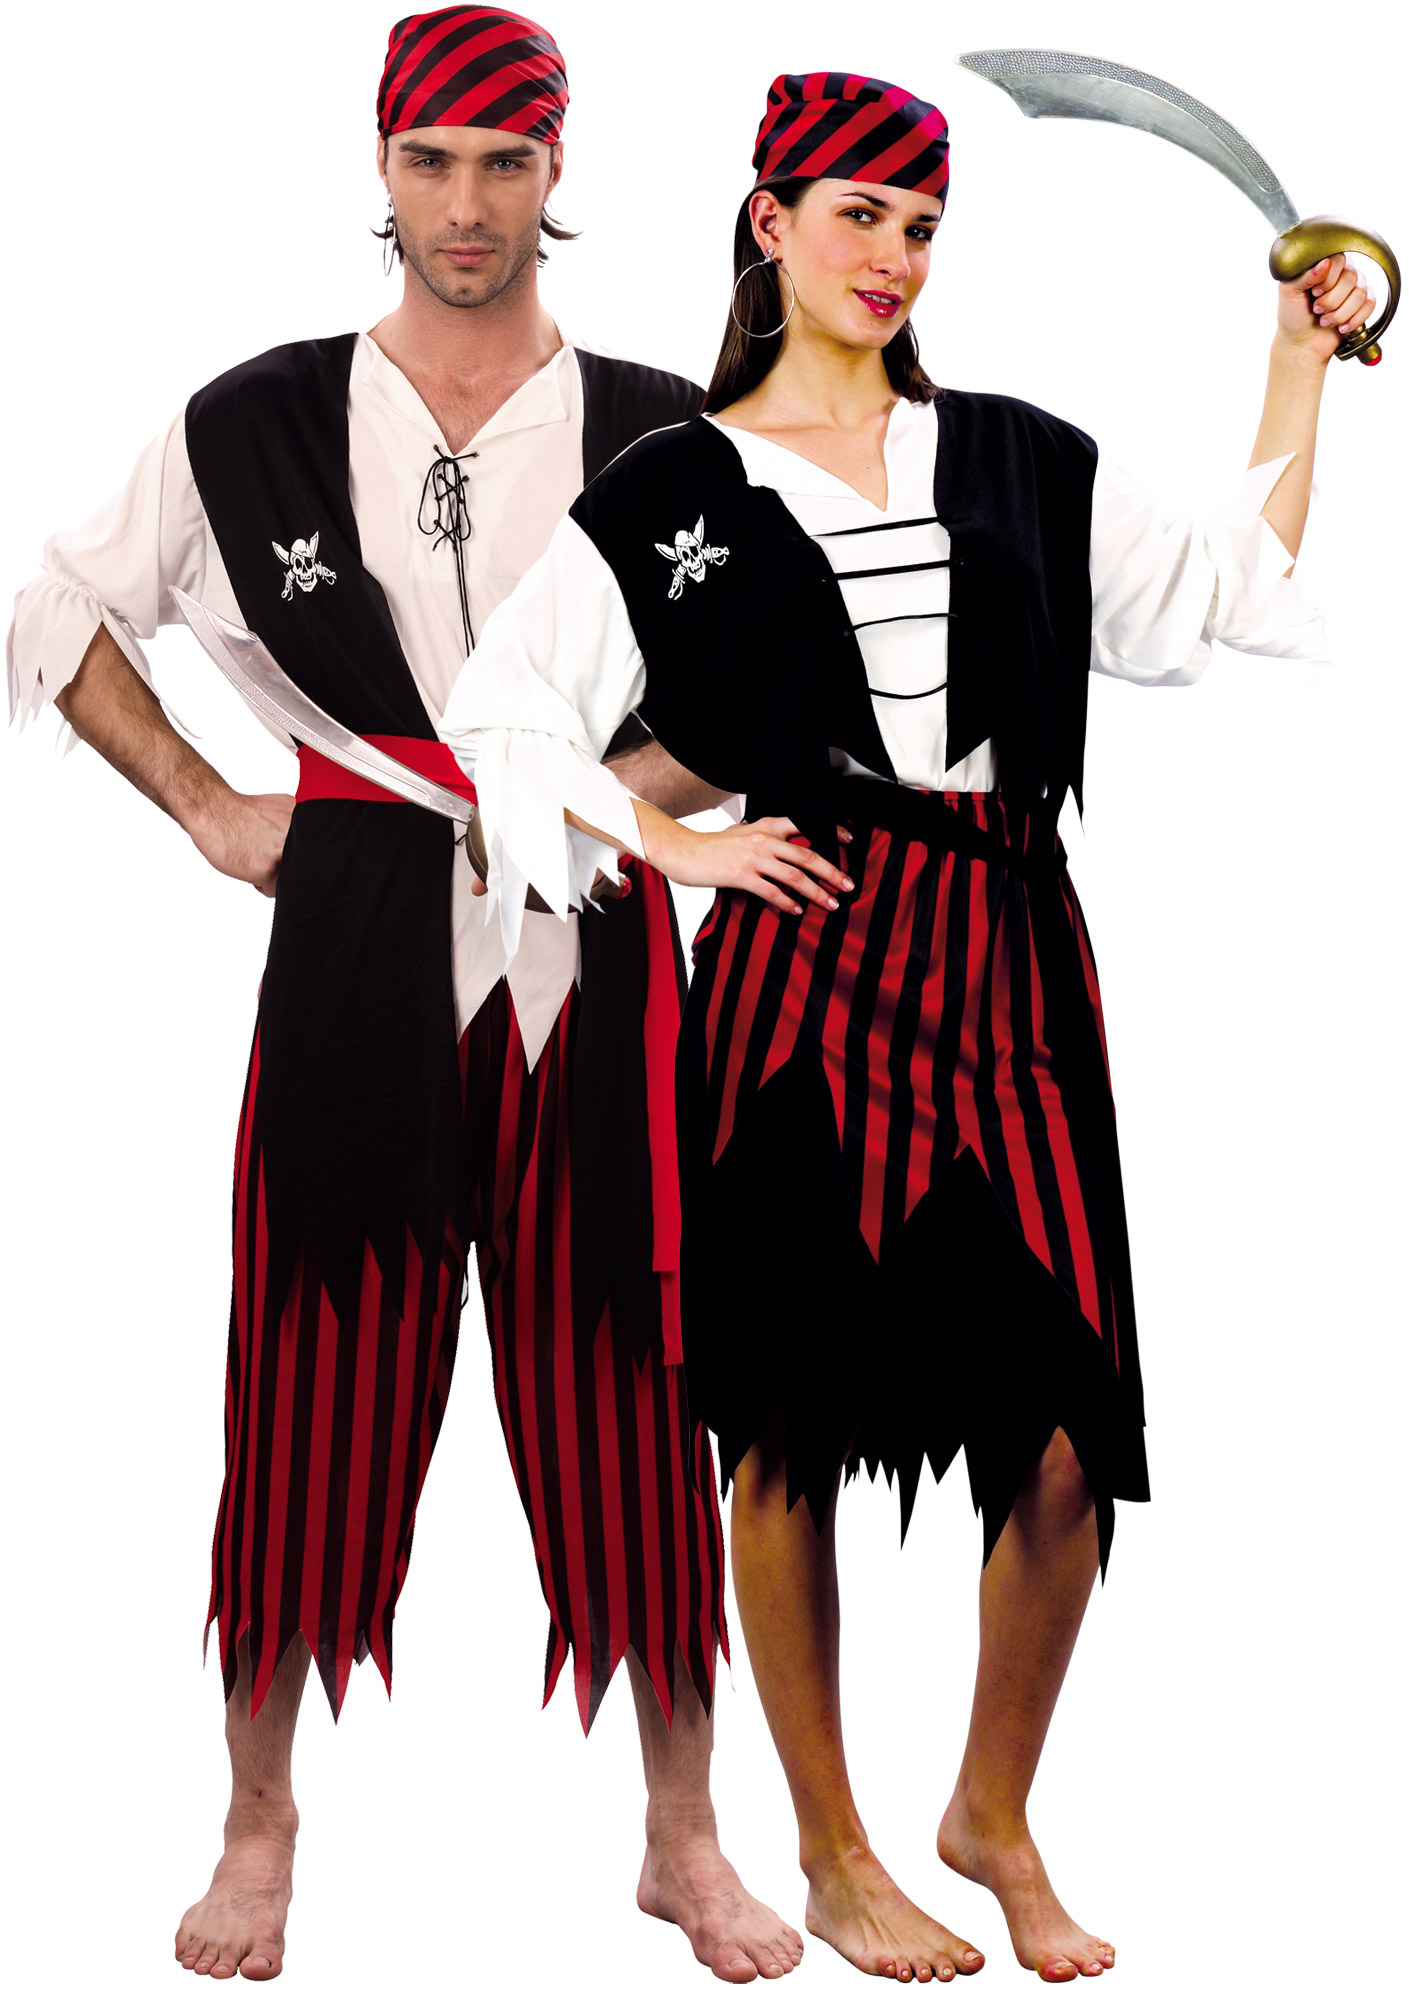 D guisement couple de pirates d guisement couple pas cher costume carnaval - Deguisement couple halloween ...